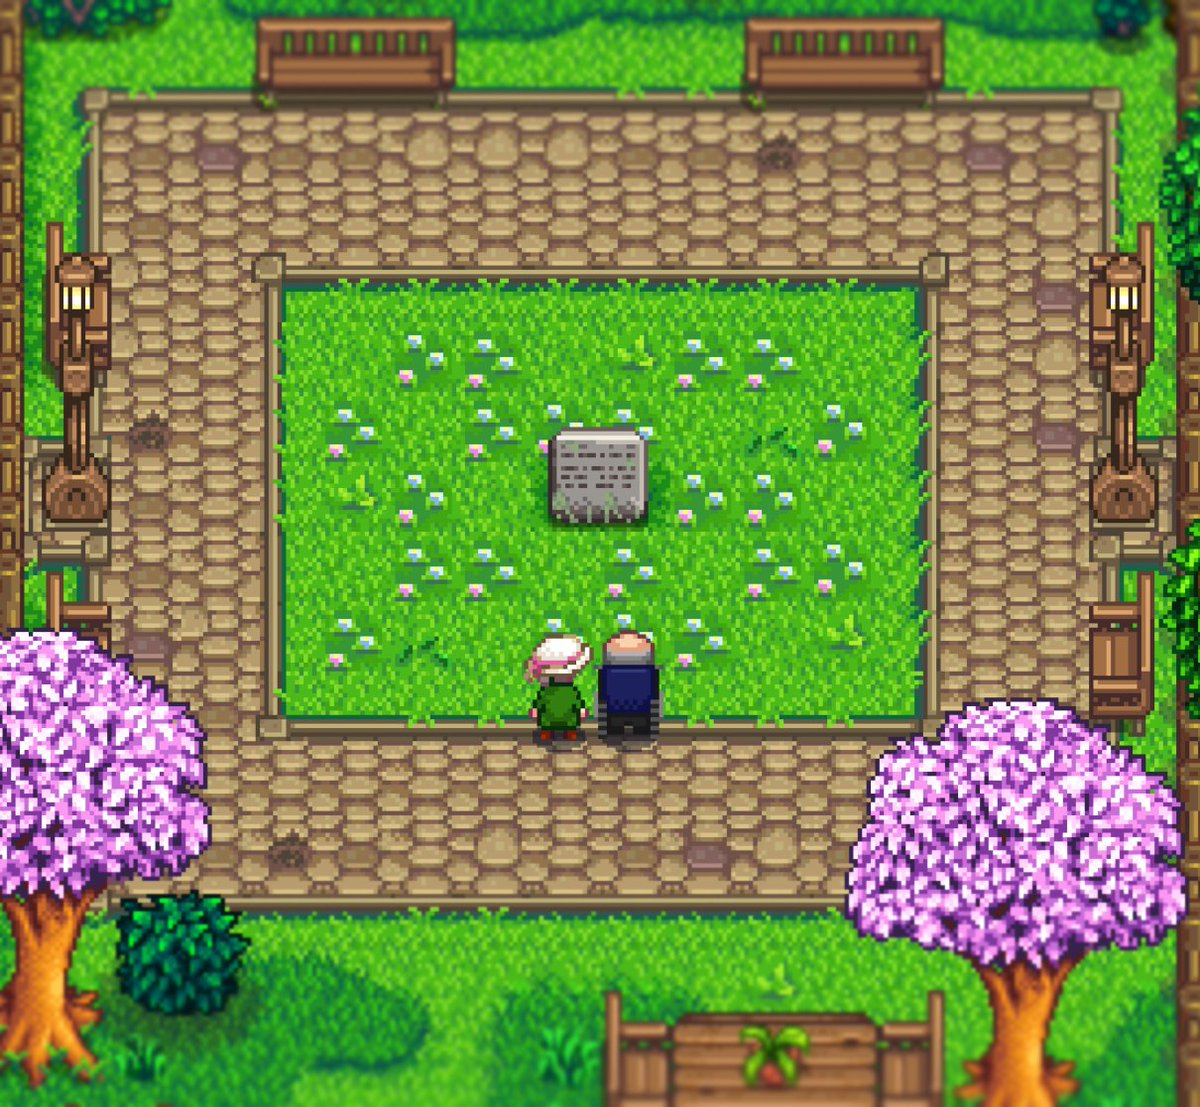 Flashshifter On Twitter Fun Fact George And Evelyn Visit The Pelican Town Marker On Saturdays Stardewvalley Stardewvalleyexpanded See more of stardew valley on facebook. evelyn visit the pelican town marker